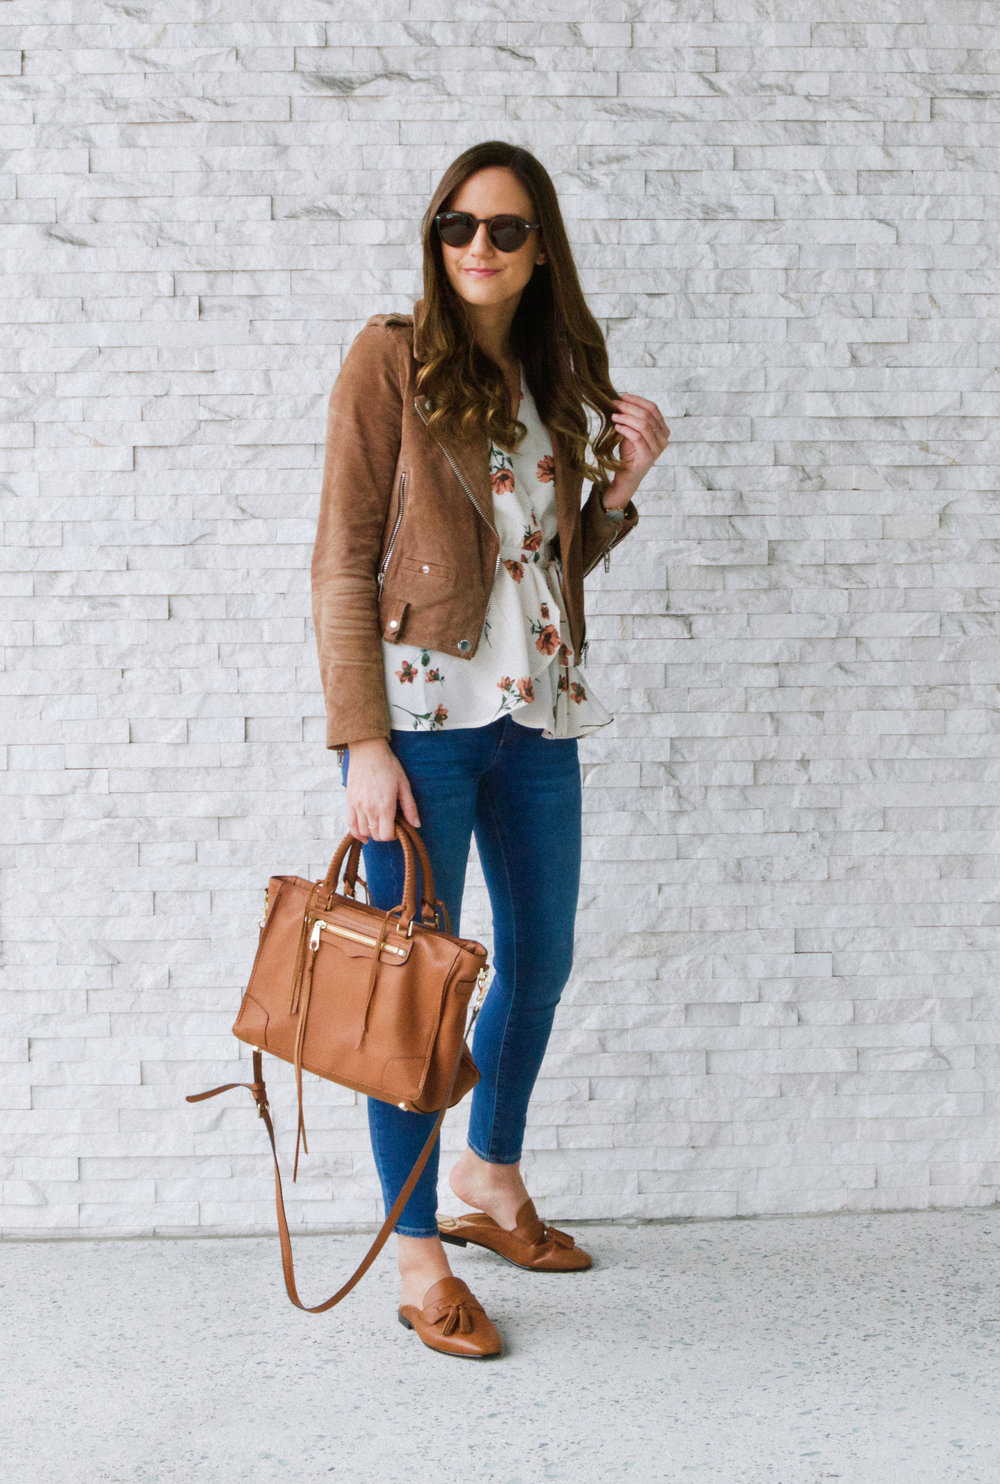 Tan Faux Suede Jacket and Floral Top